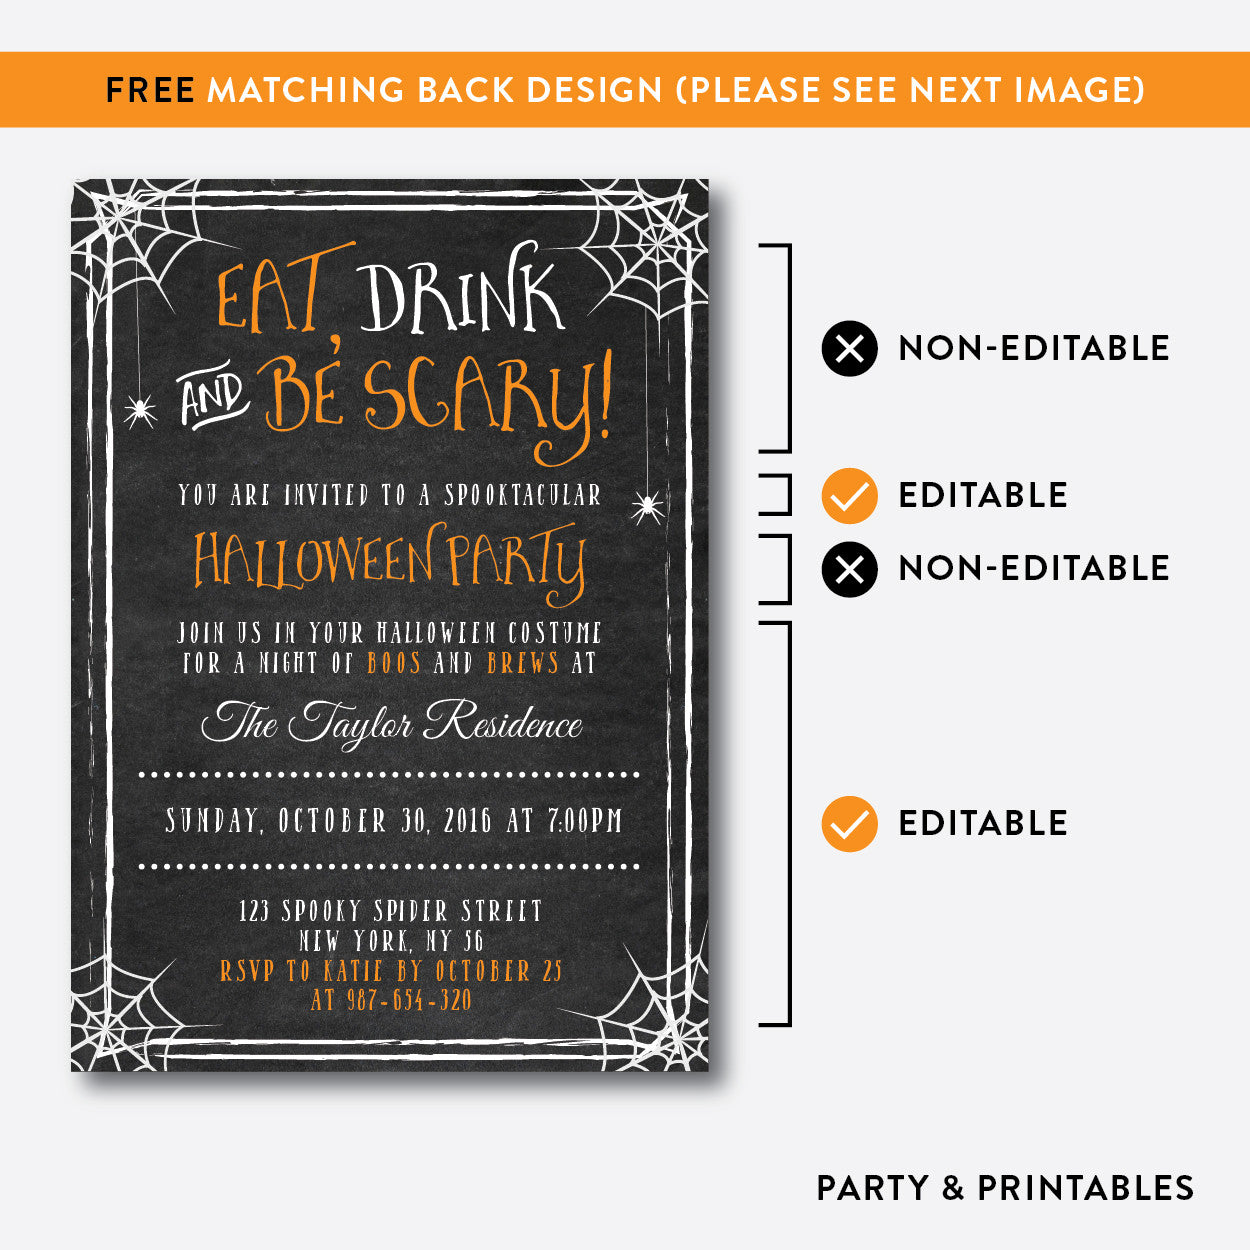 Eat, Drink and Be Scary Halloween Invitation / Editable / Instant Download (CHI.12), invitation - Party and Printables